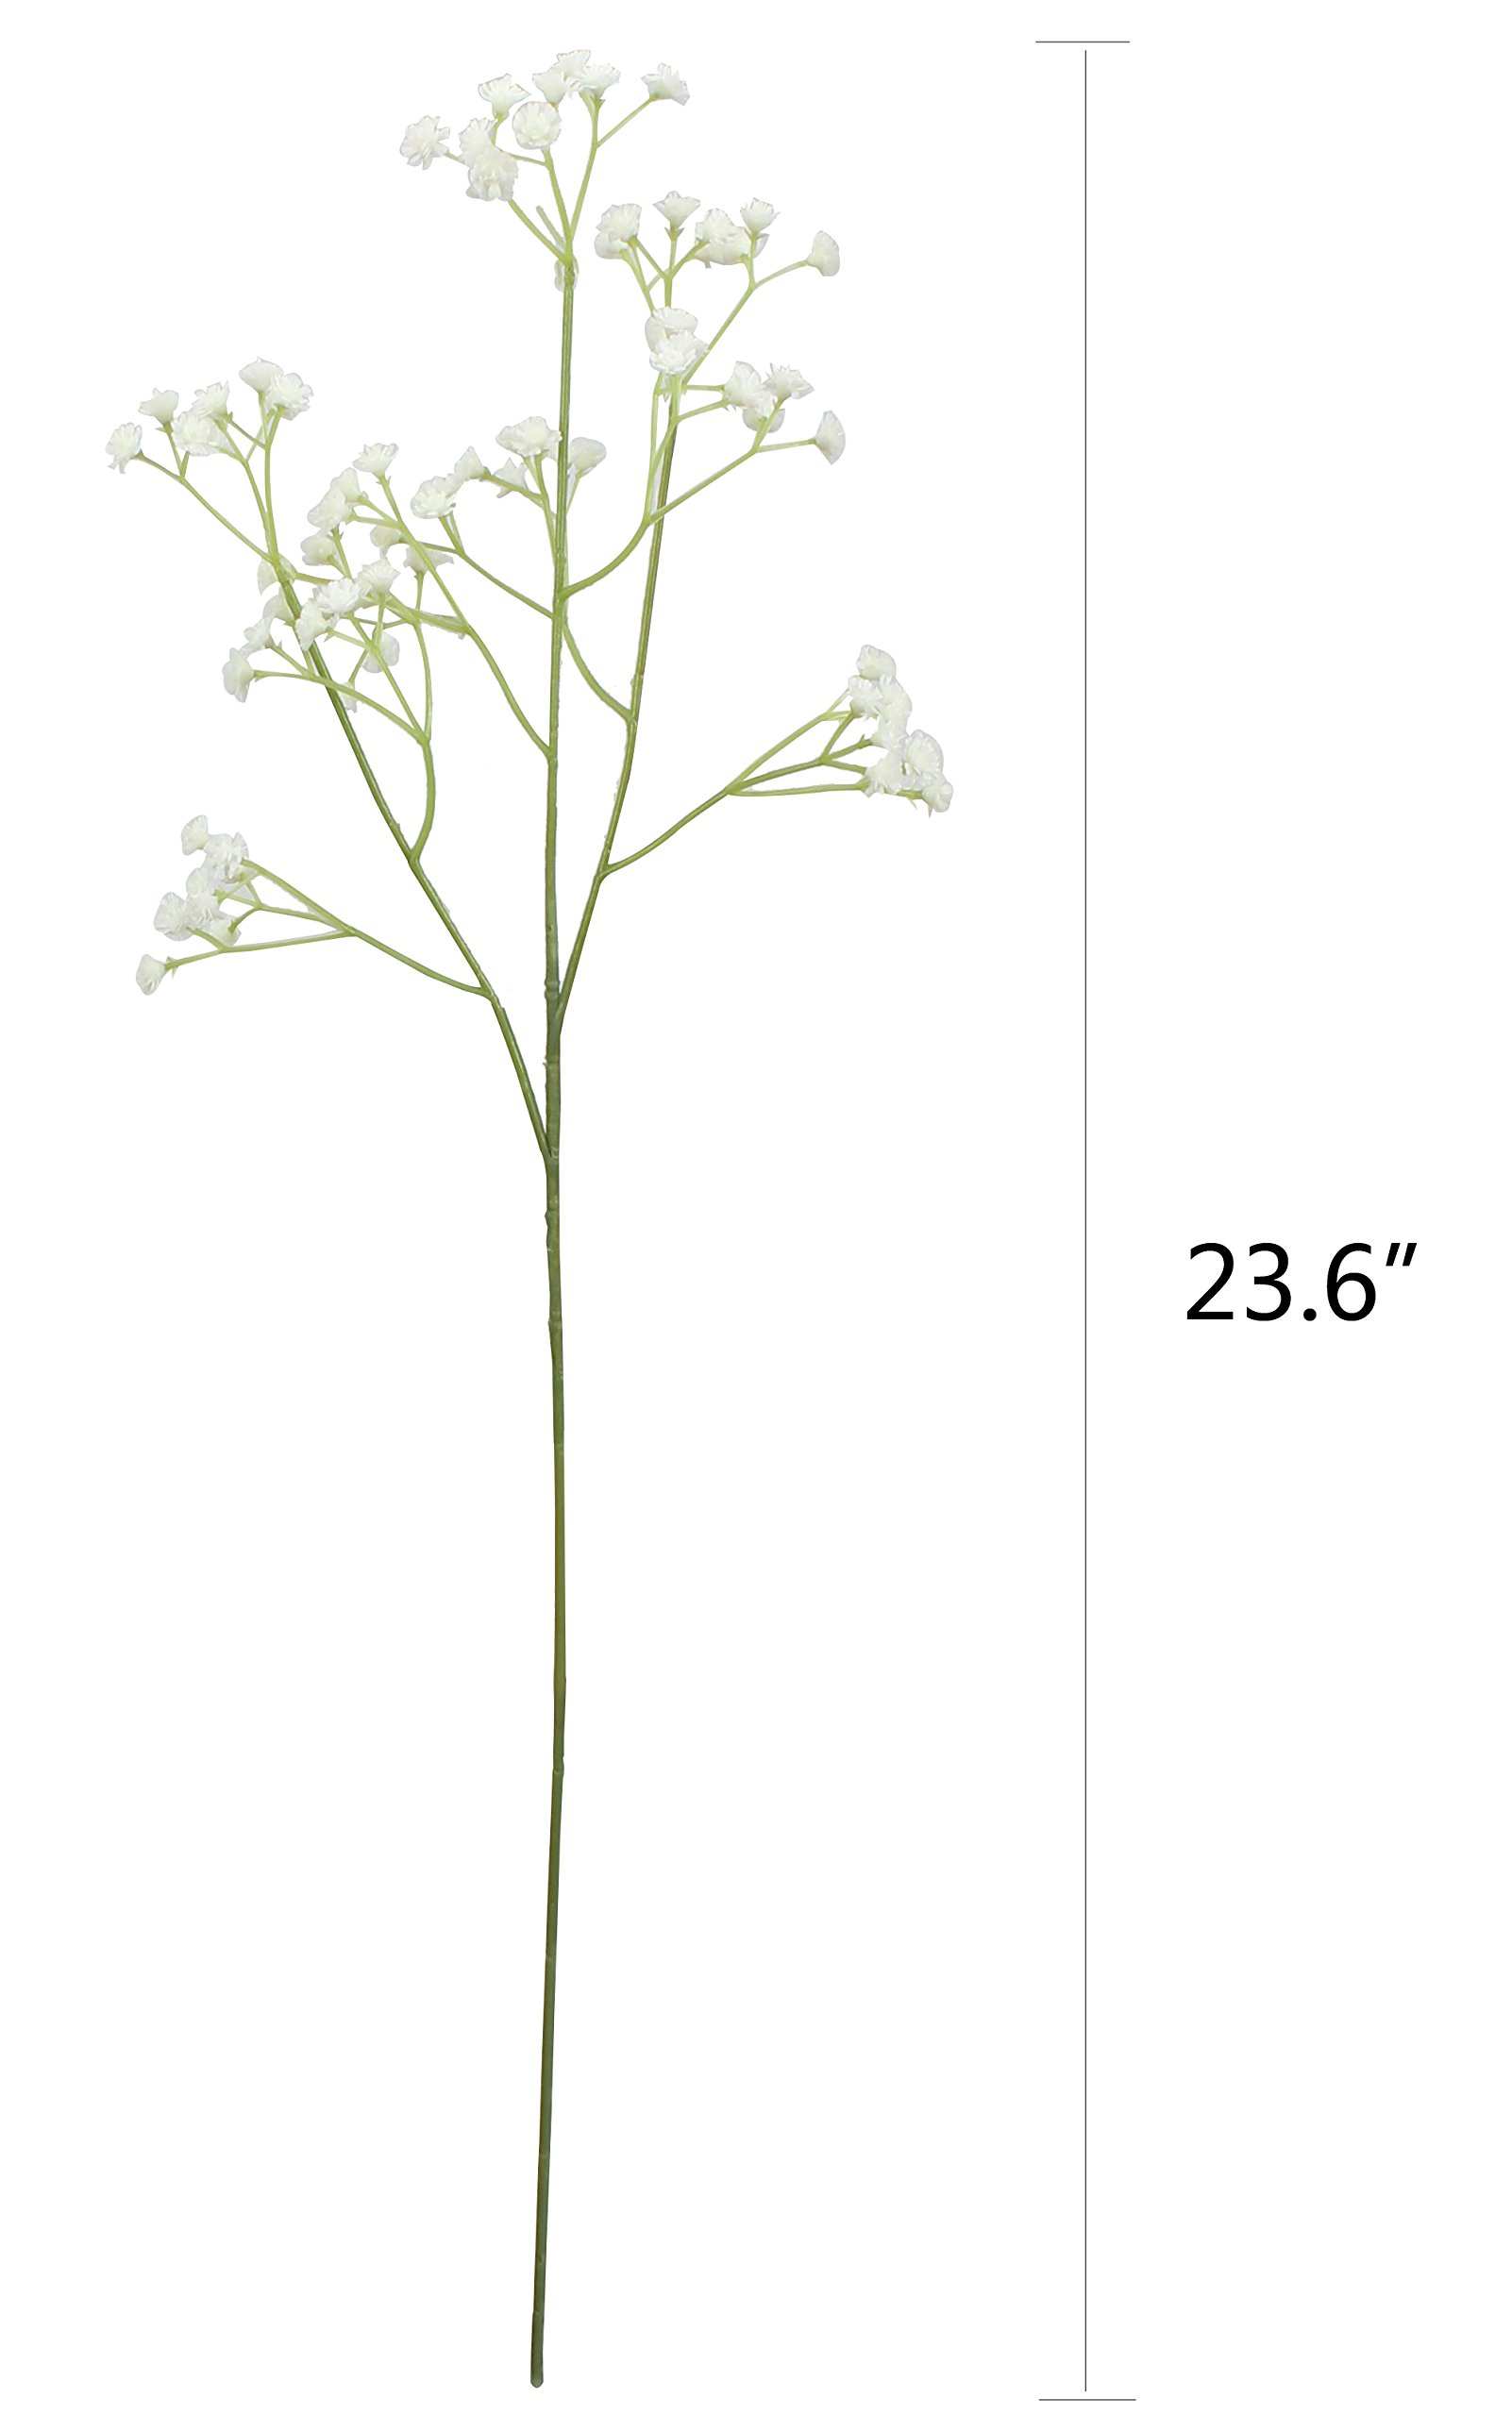 Duovlo-10pcs-Babies-Breath-Flowers-236-Artificial-Gypsophila-Bouquets-Real-Touch-Flowers-for-Wedding-Home-DIY-Decor